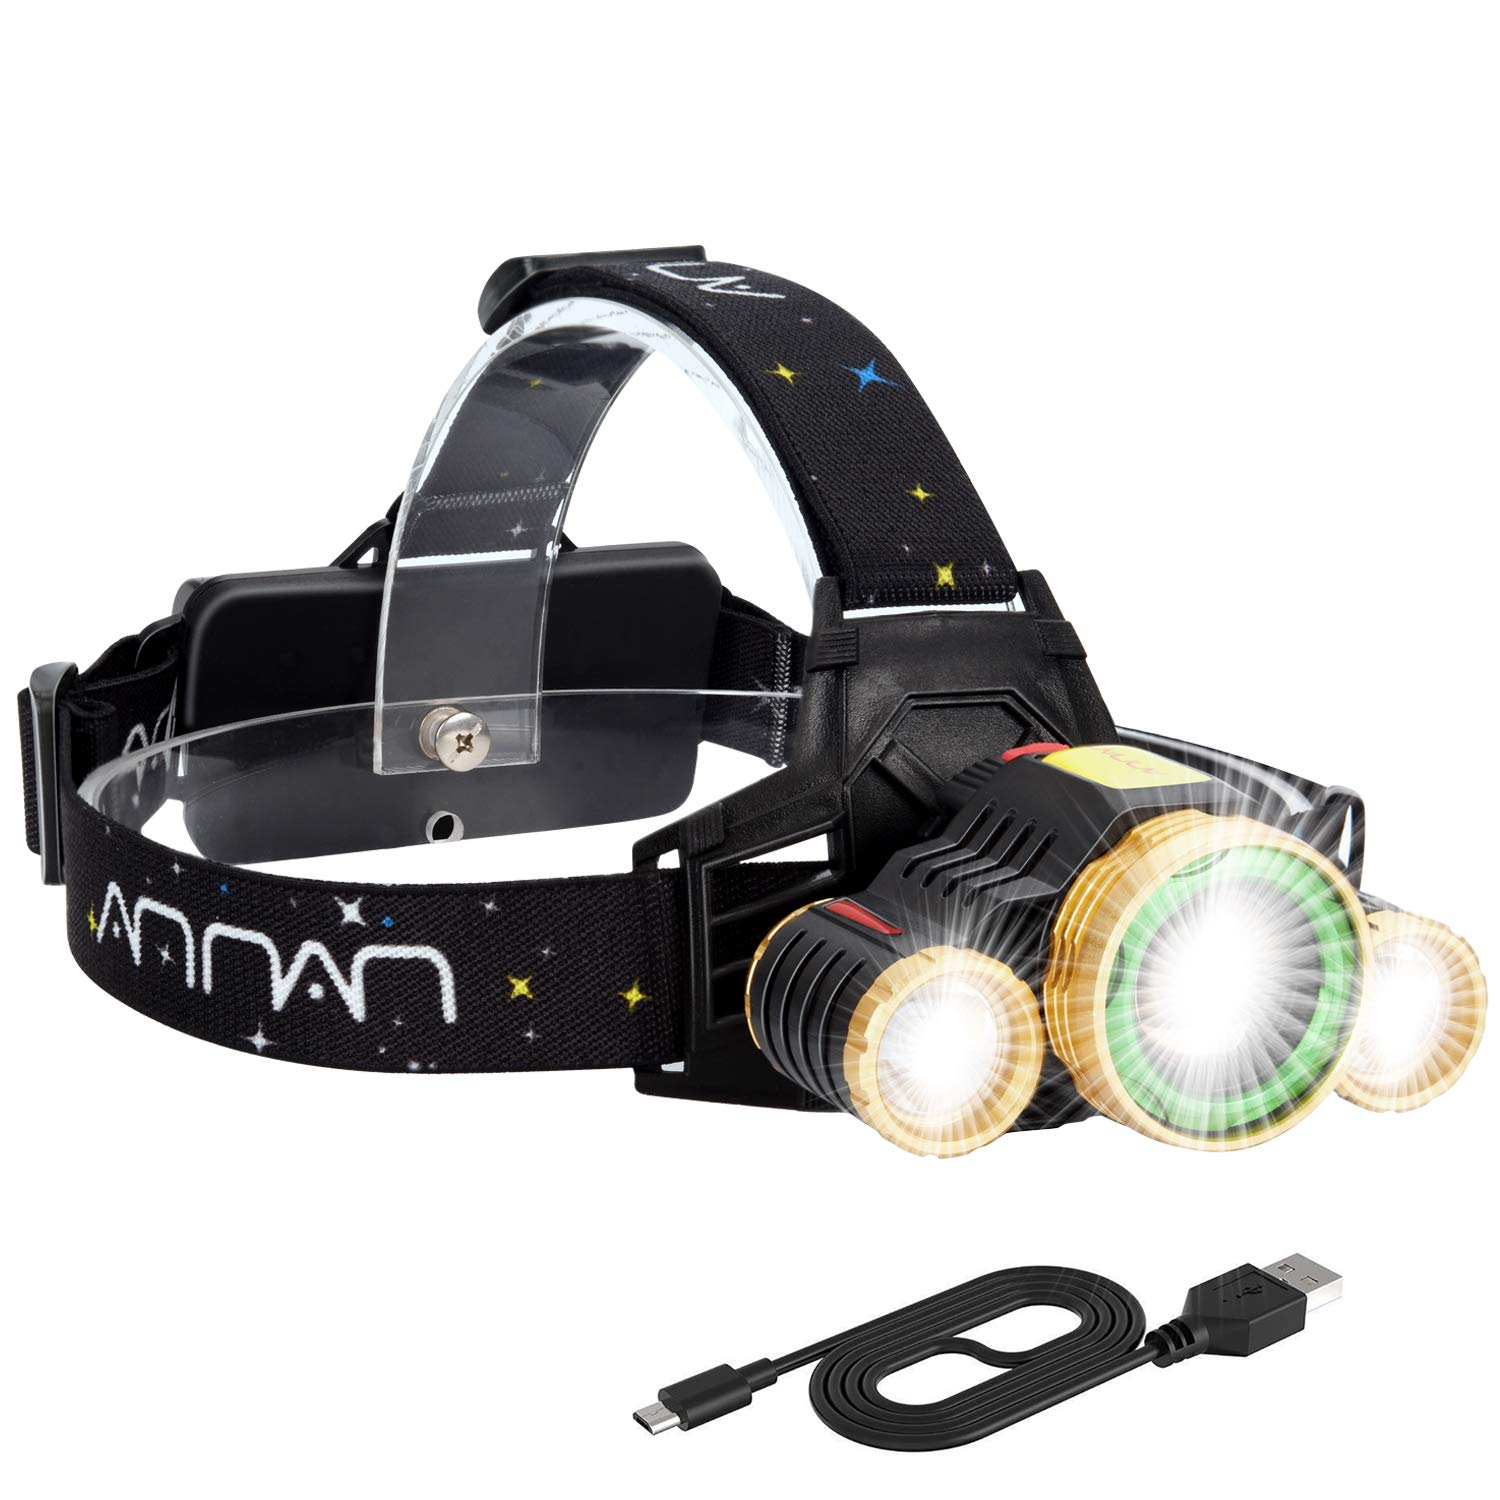 GM12546 IPX4 Waterproof 1000 Lumens Headlamp